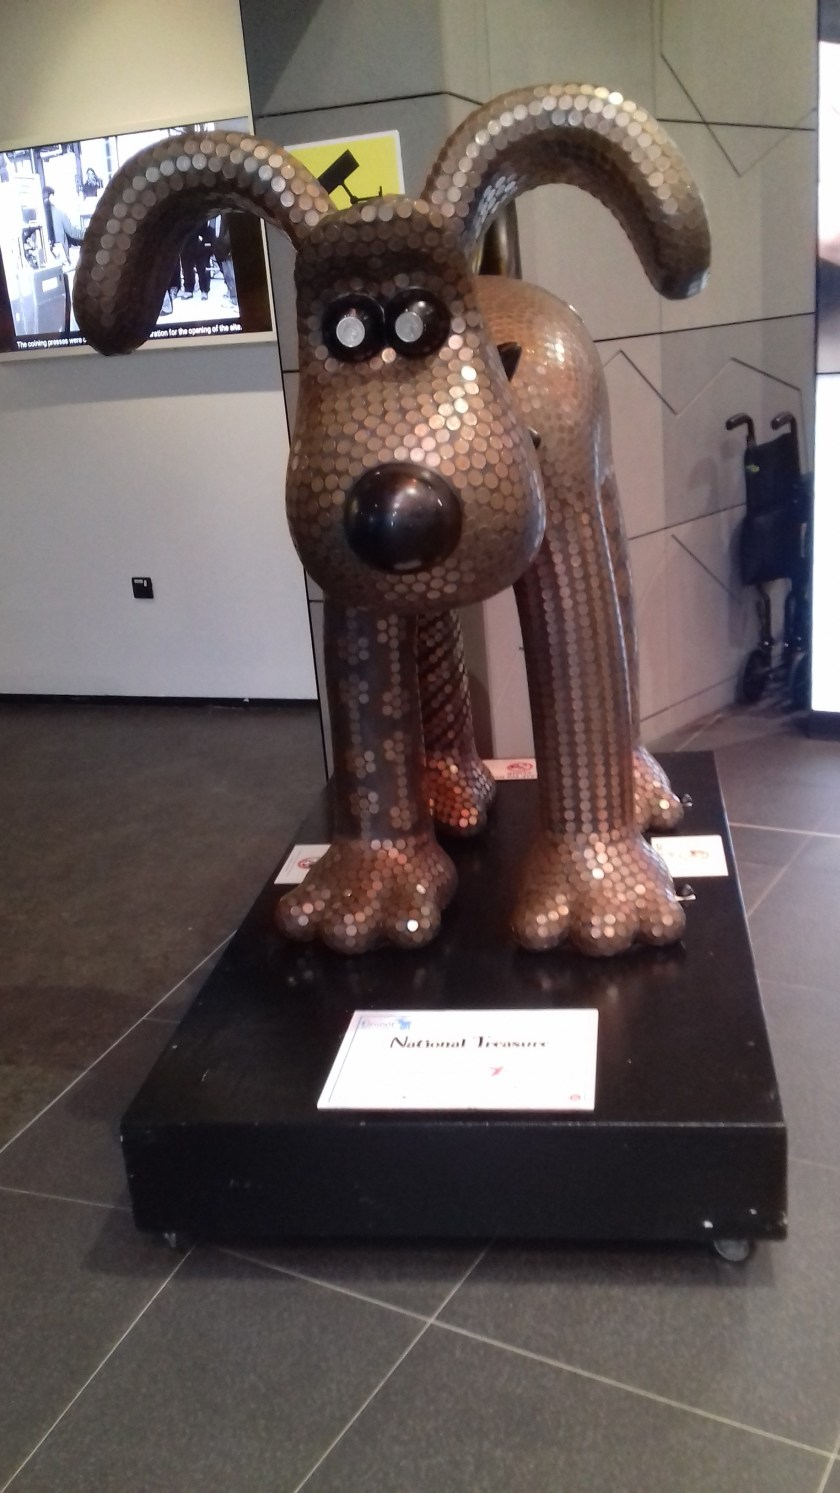 Gromit covered with new pence.